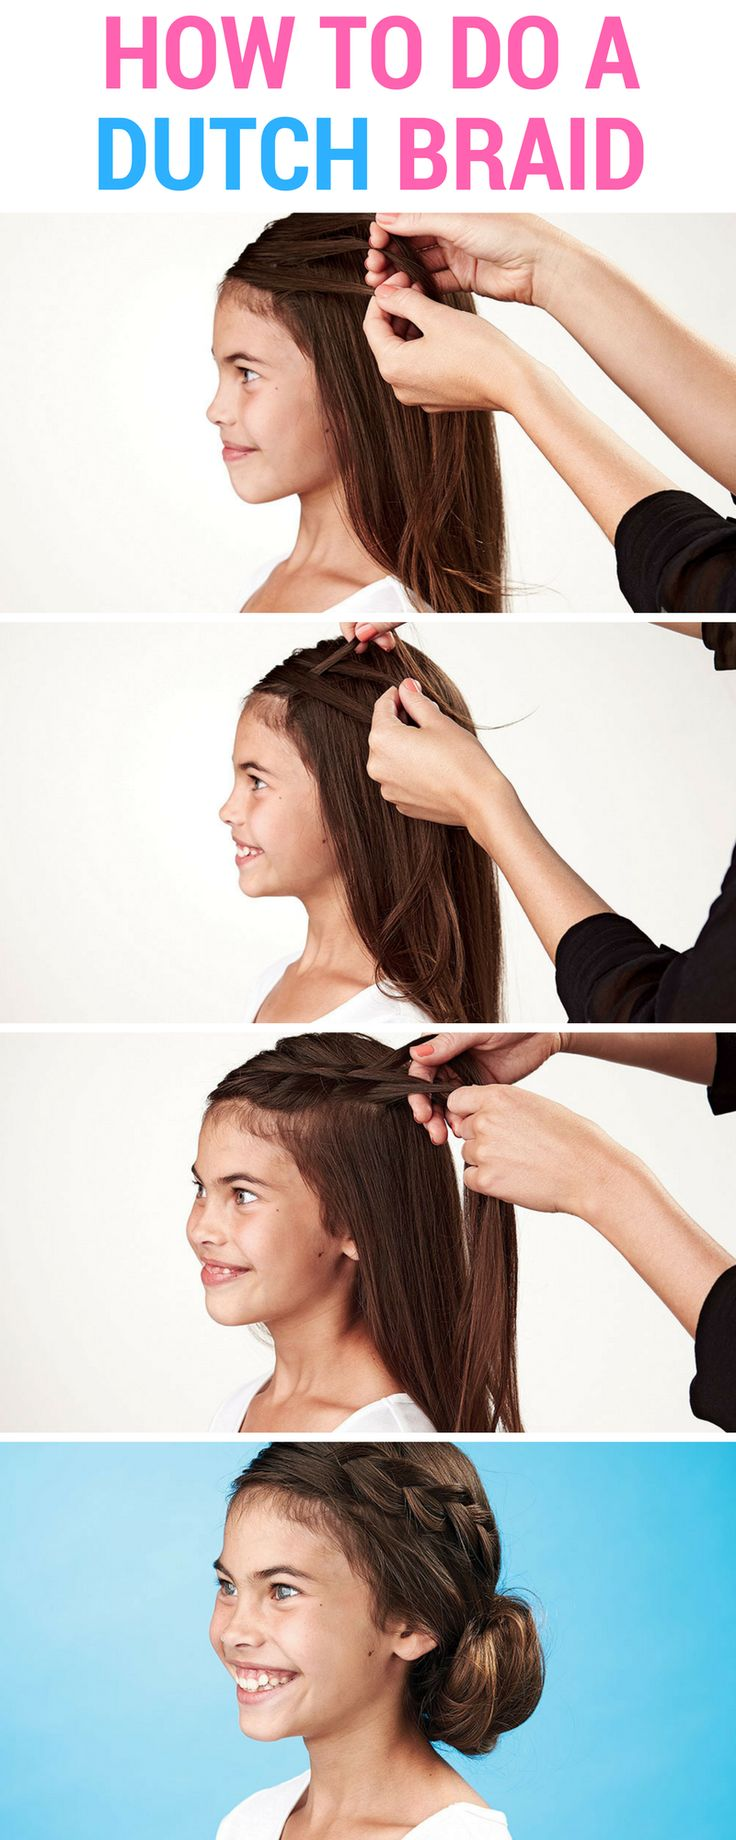 Youngsters' hair: Find out how to do a Dutch braid